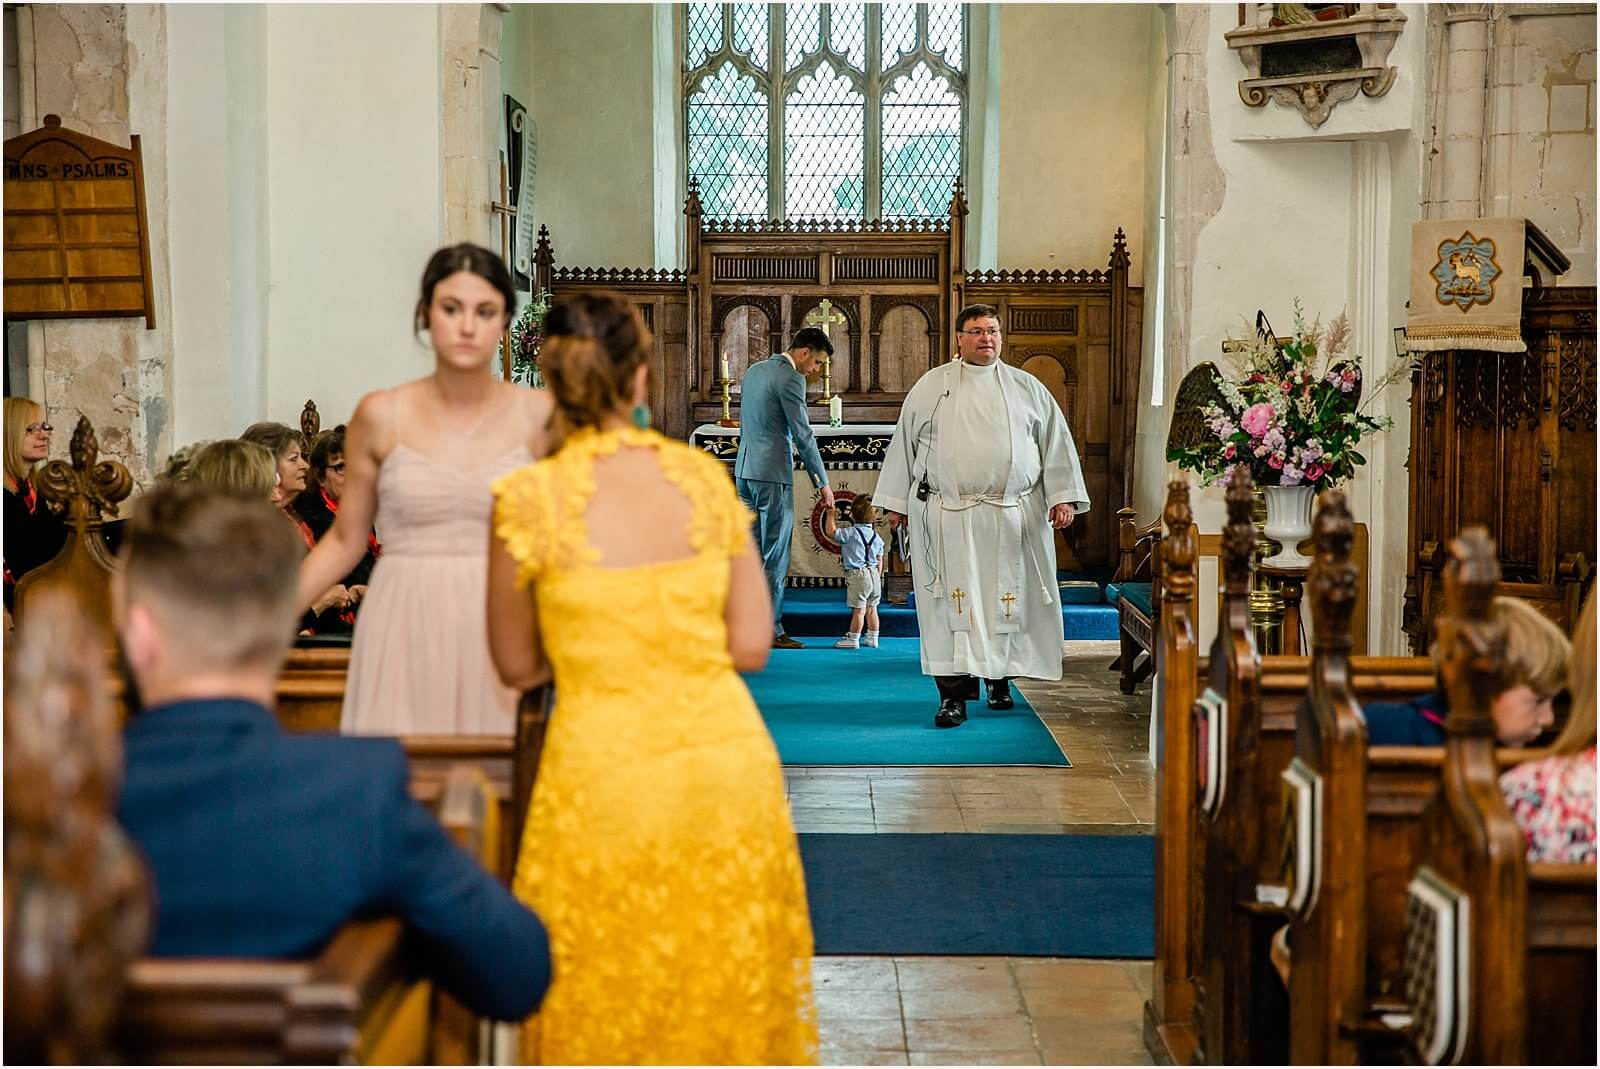 Polstead Church Wedding | Carla & Toby 18